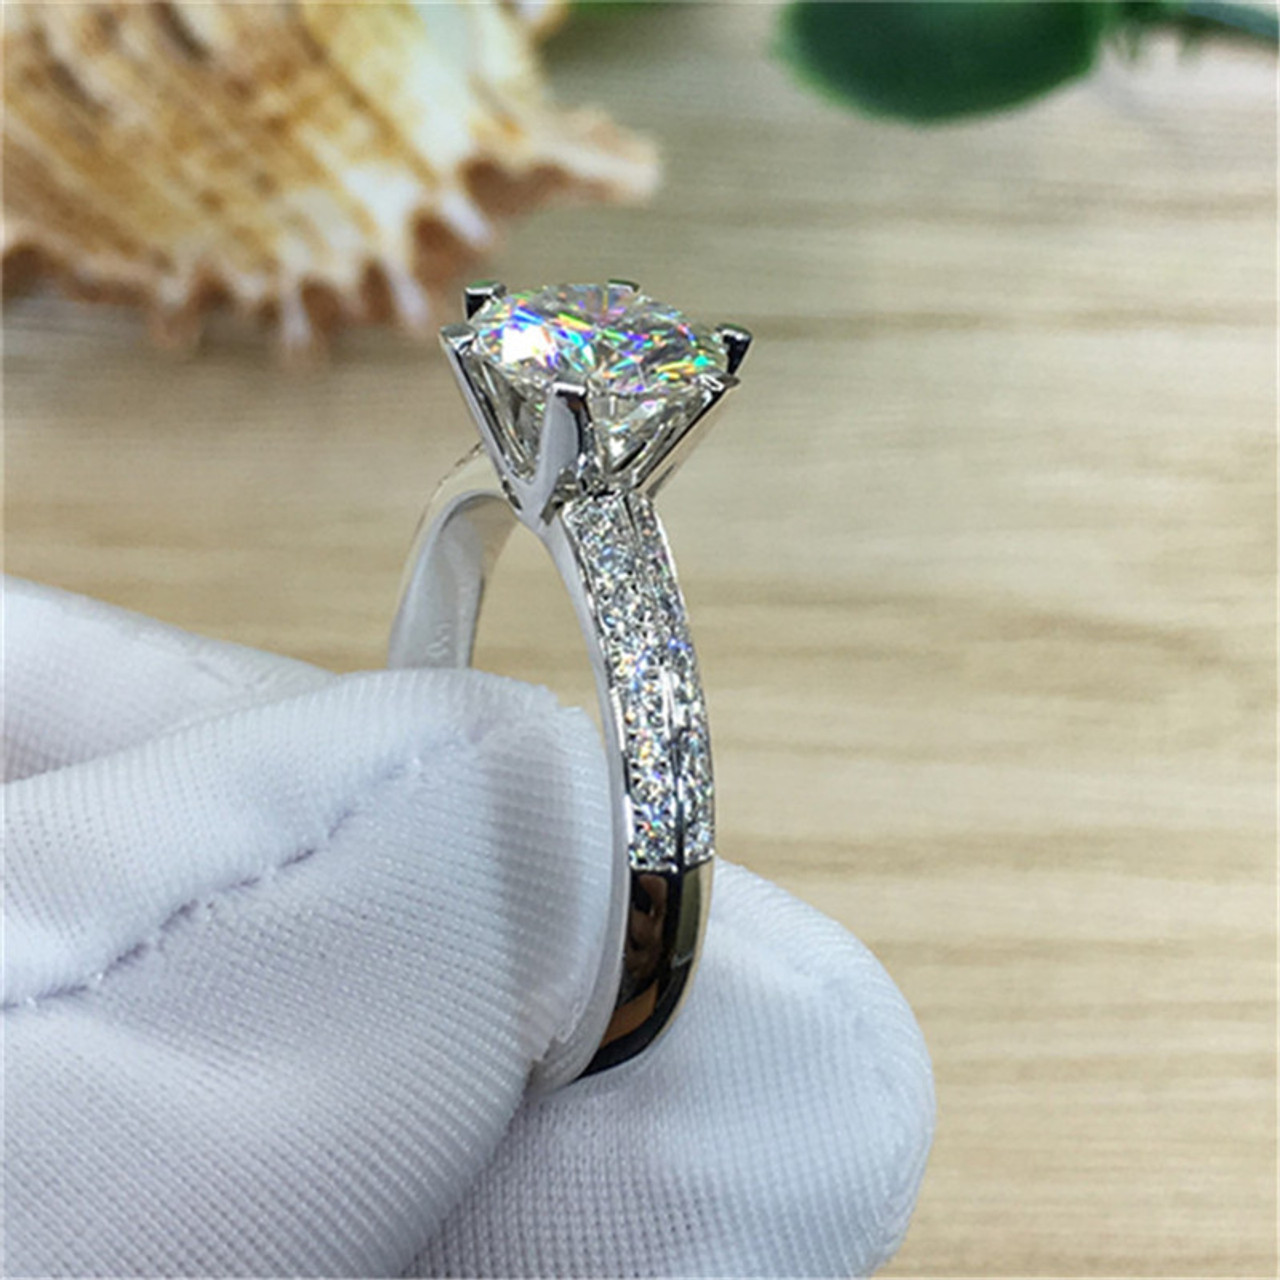 rings sterling shape synthetic stone yellow jewelry for beautiful genuine fine pear item wedding diamond women